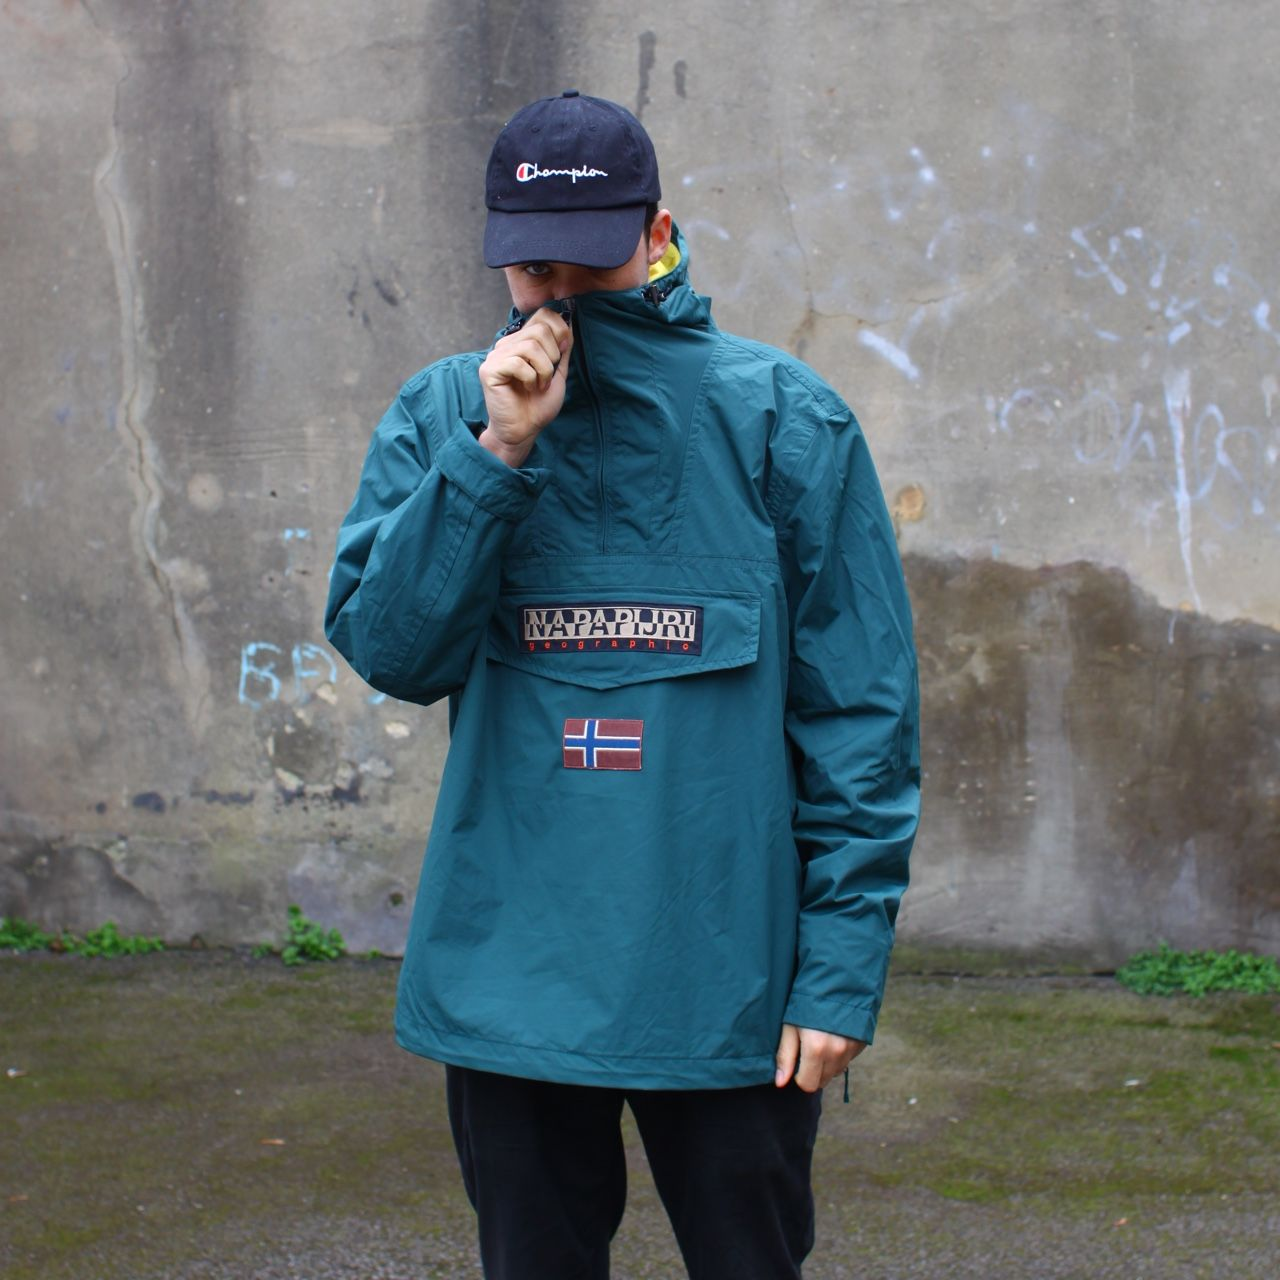 76350cecd7861 Napapijri quarter-zip Jacket!! In a natural mountain green colourway!! Size  XXL but more of a L/XL model is just under 6ft